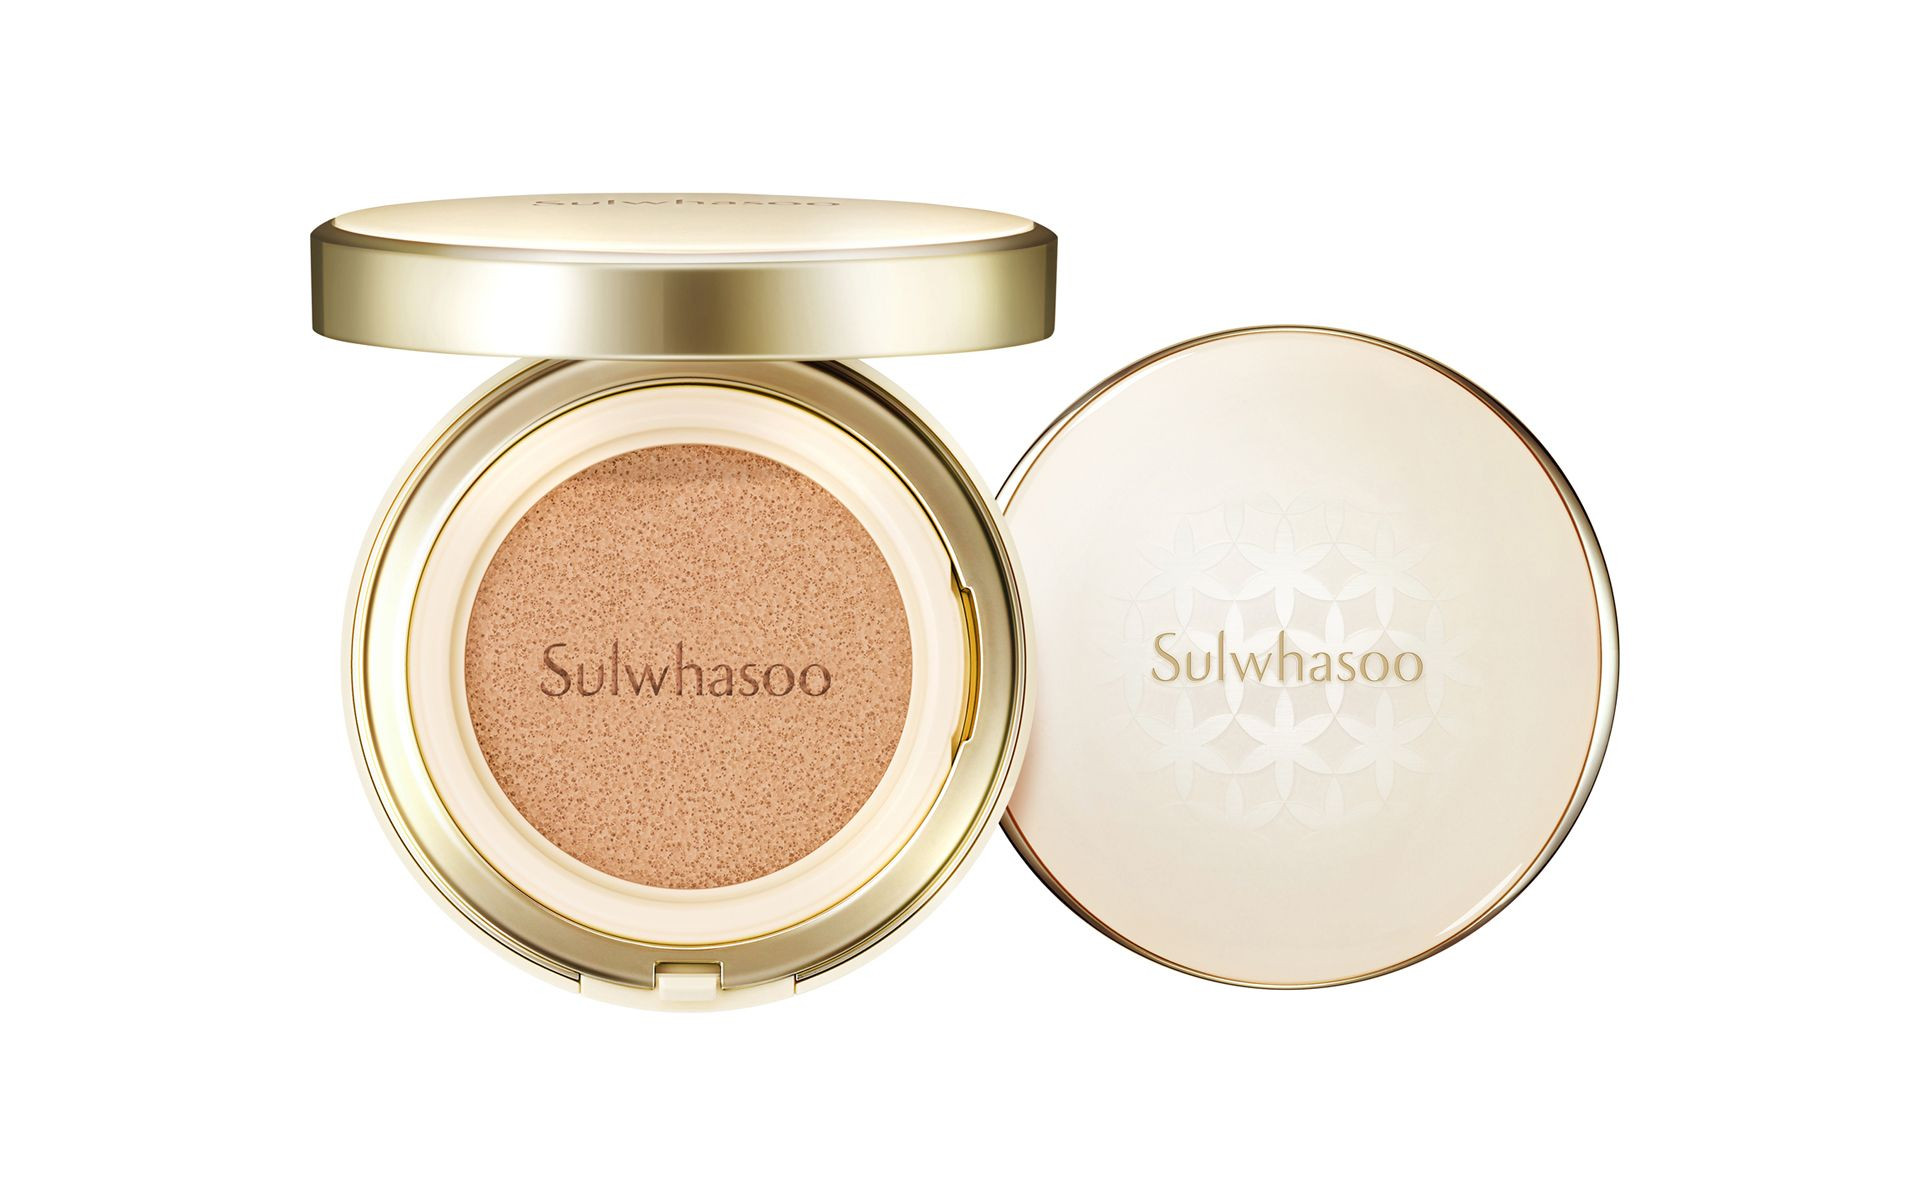 Sulwhasoo Perfecting Cushion Foundation Compact (около 2000 грн)